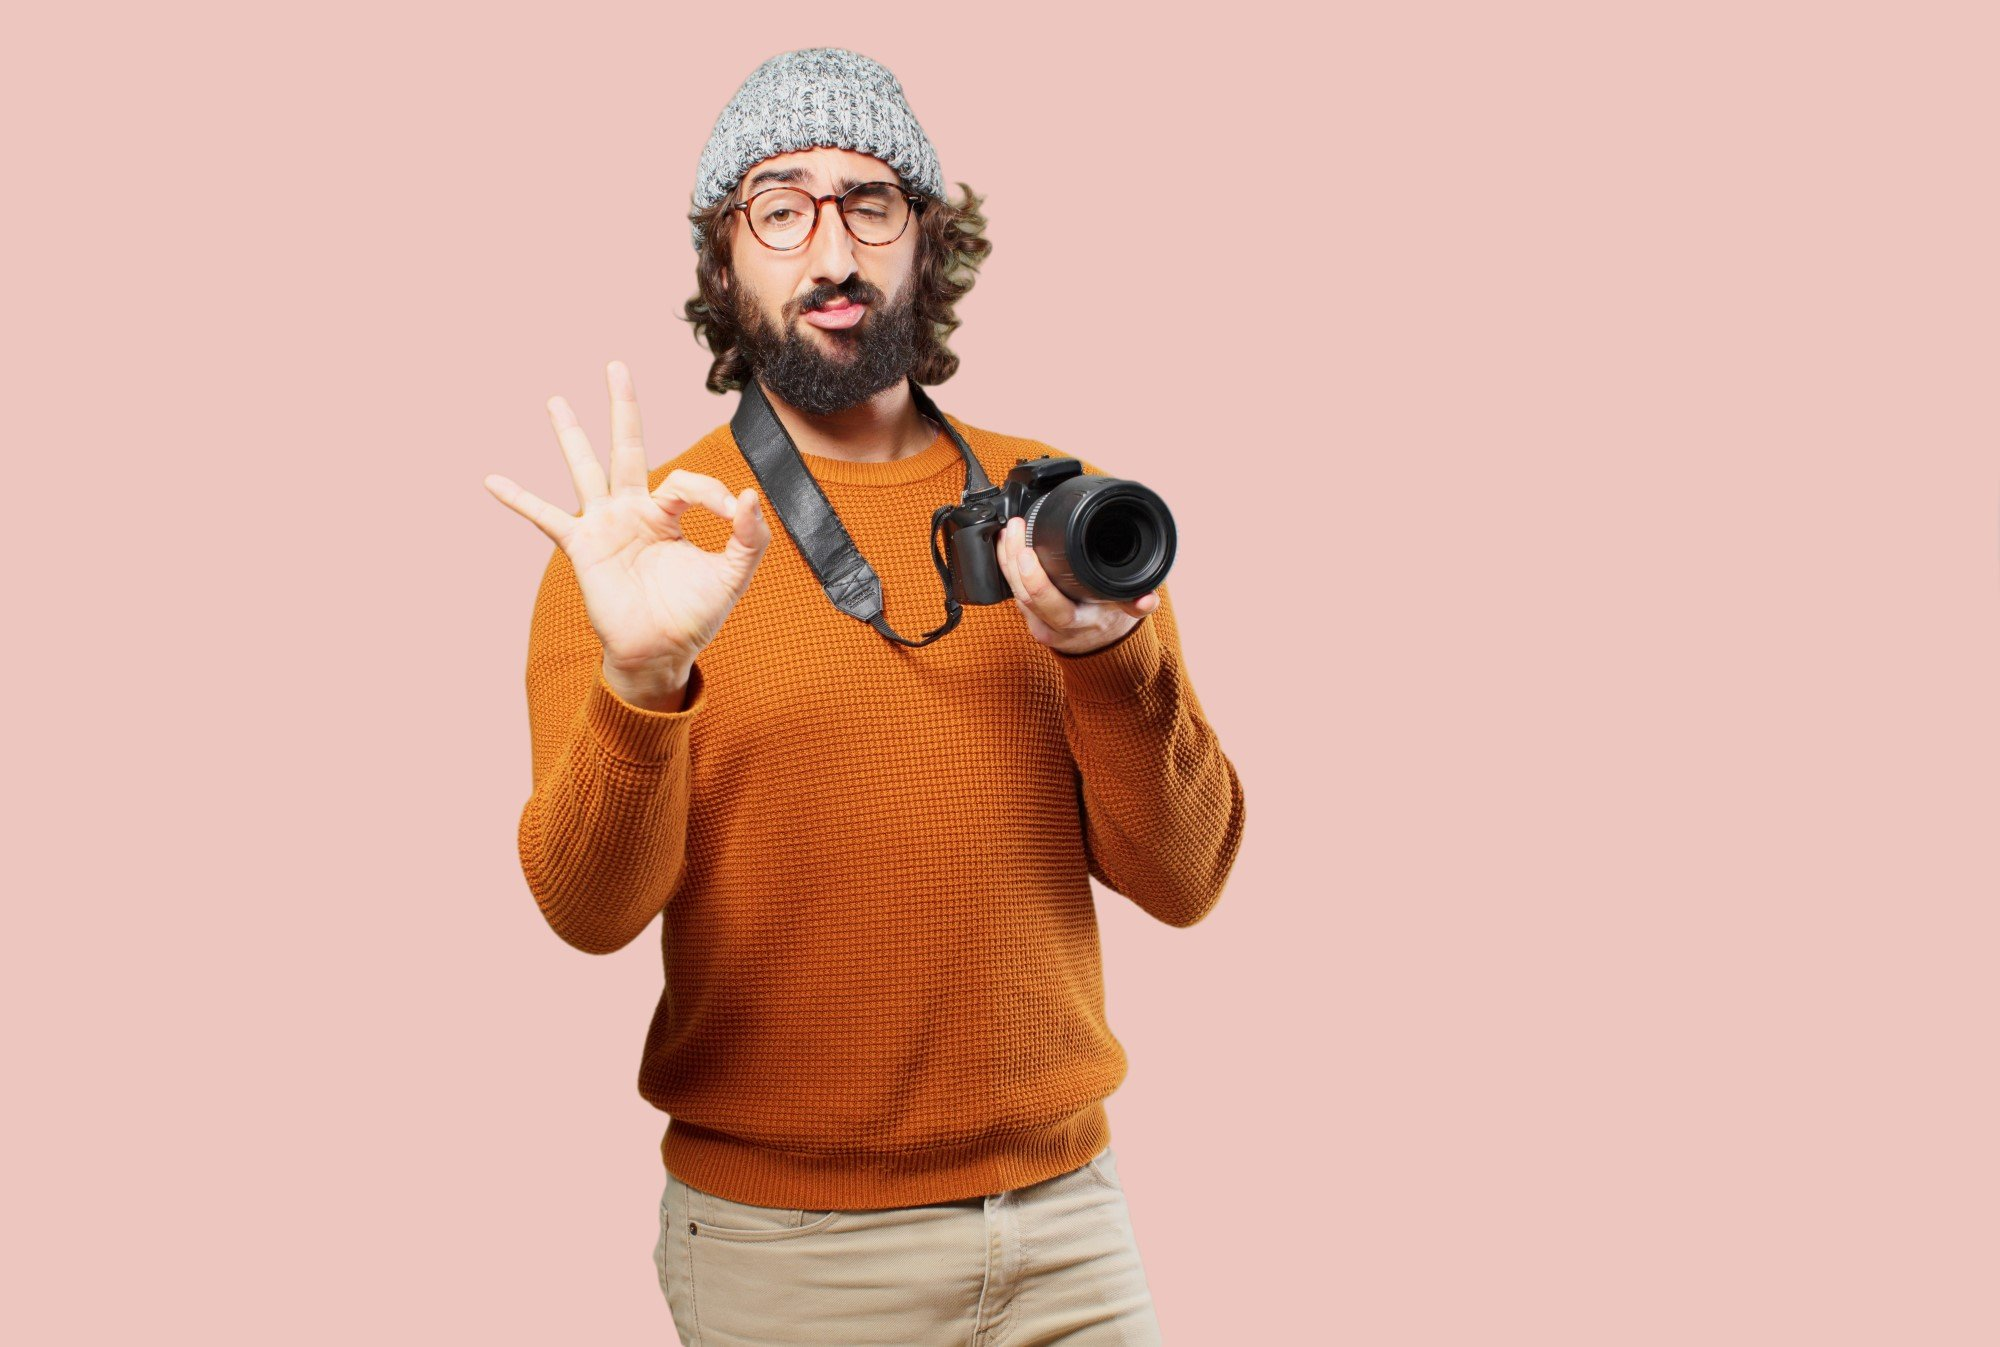 Photographer wearing non-matching clothing